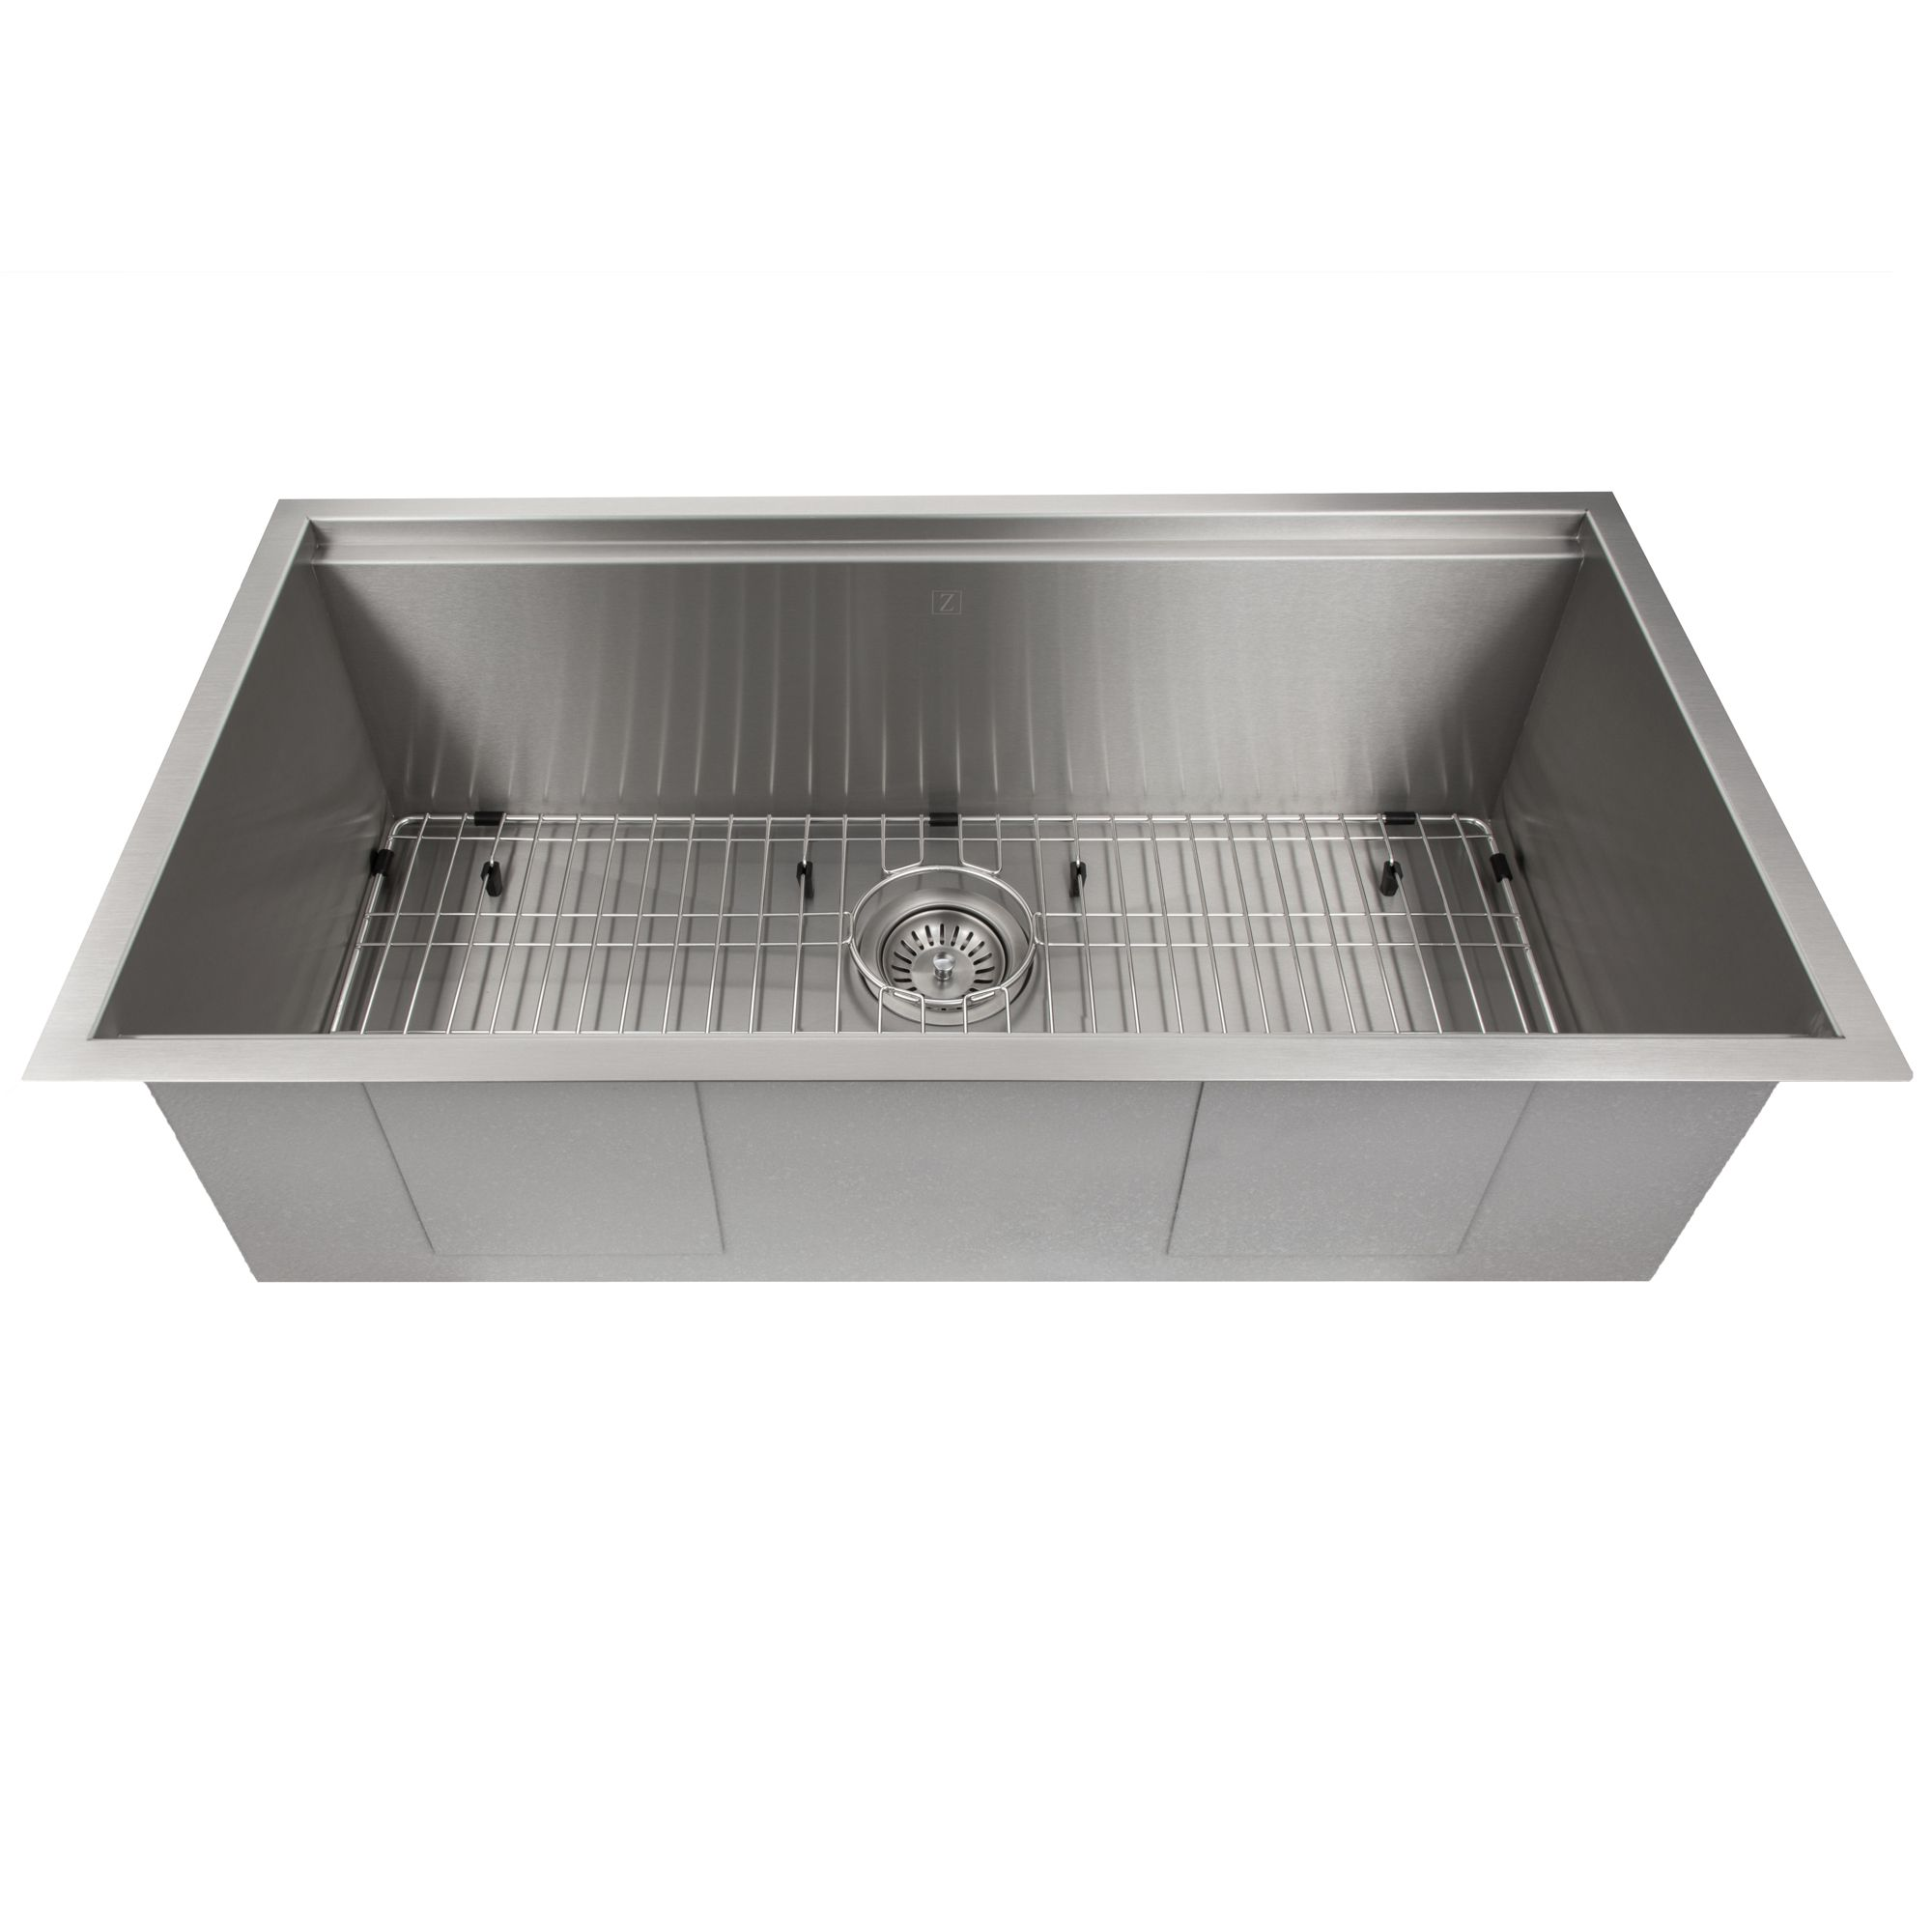 Zline Designer Series 33 Inch Undermount Single Bowl Ledge Sink In Stainless Steel With Accessories Sls 33 Sink Stainless Steel Range Hood Stainless Steel